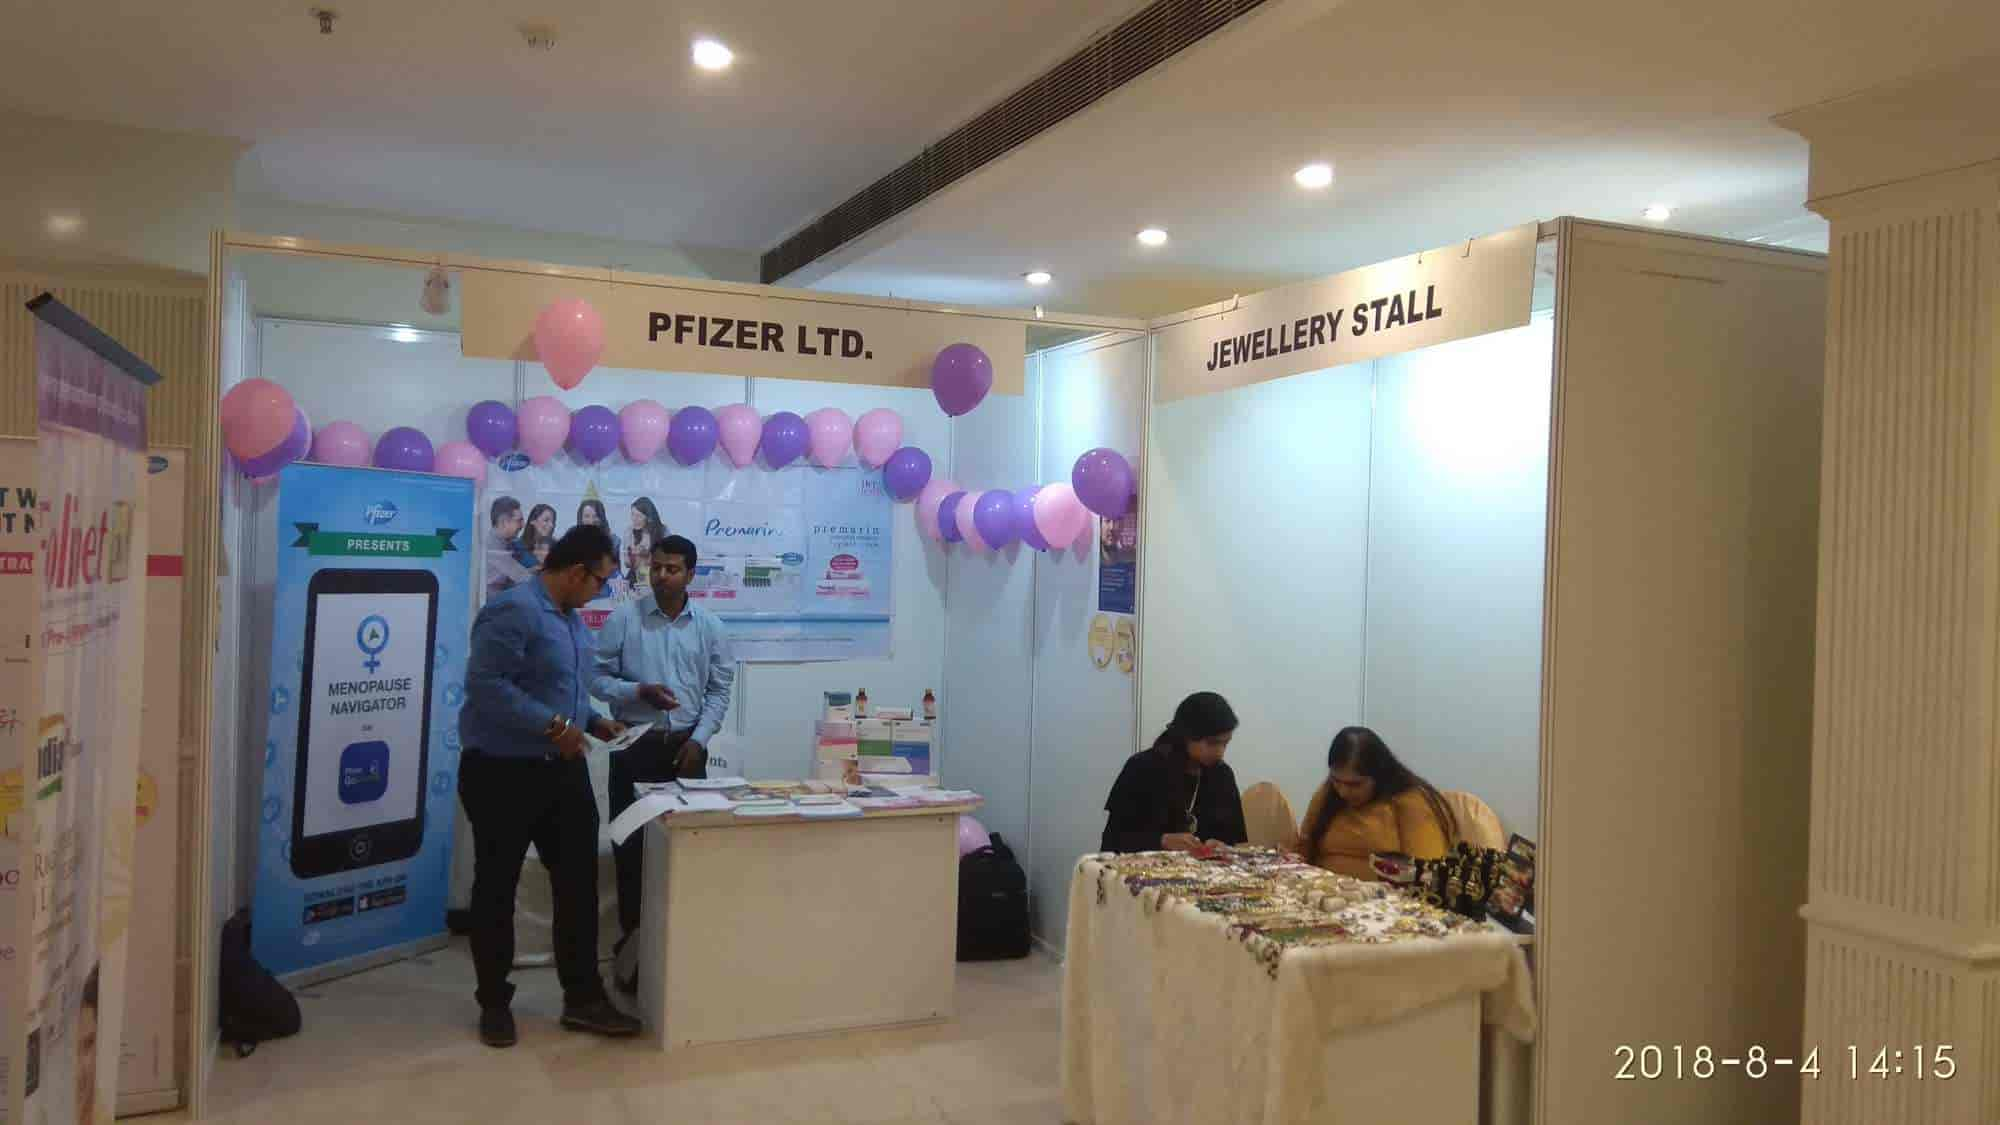 Exhibition Stall For Rent : Exhibition stall on rent photos aashiyana lucknow pictures